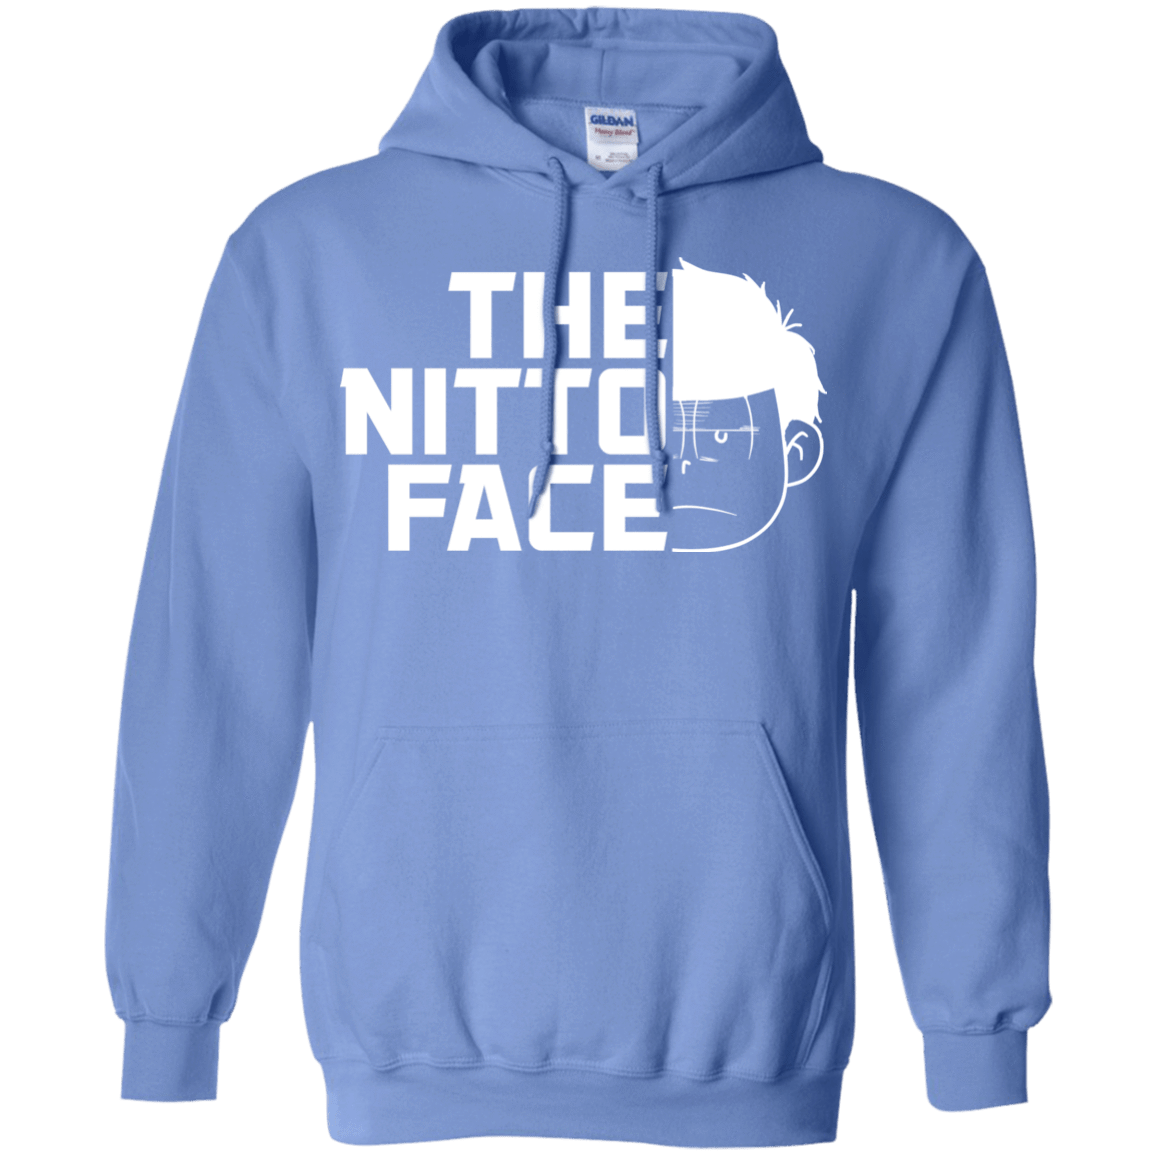 Sweatshirts Carolina Blue / S The Nitto Face Pullover Hoodie